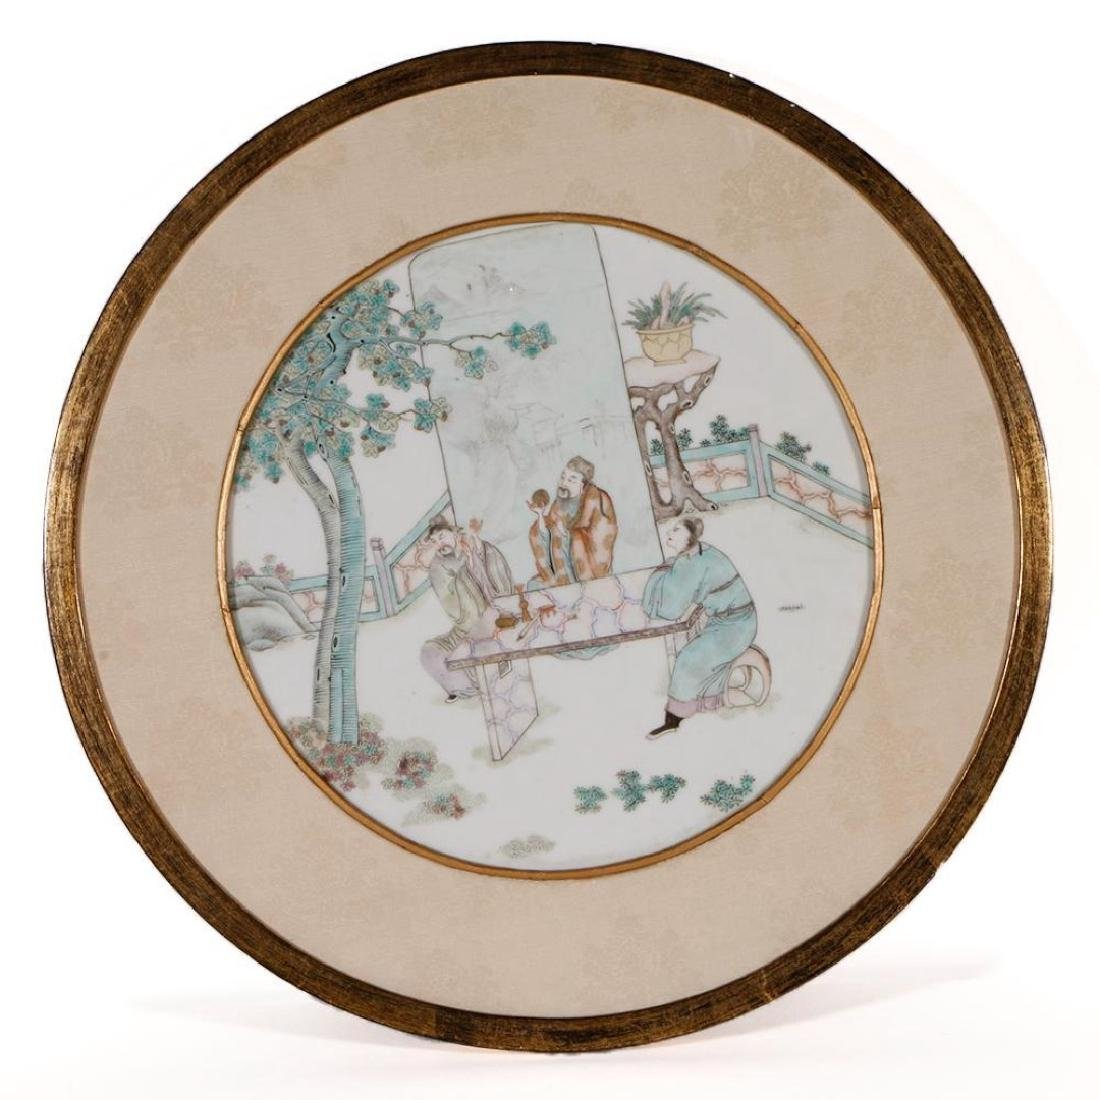 CHINESE CIRCULAR PAINTED TILE, QING DYNASTY